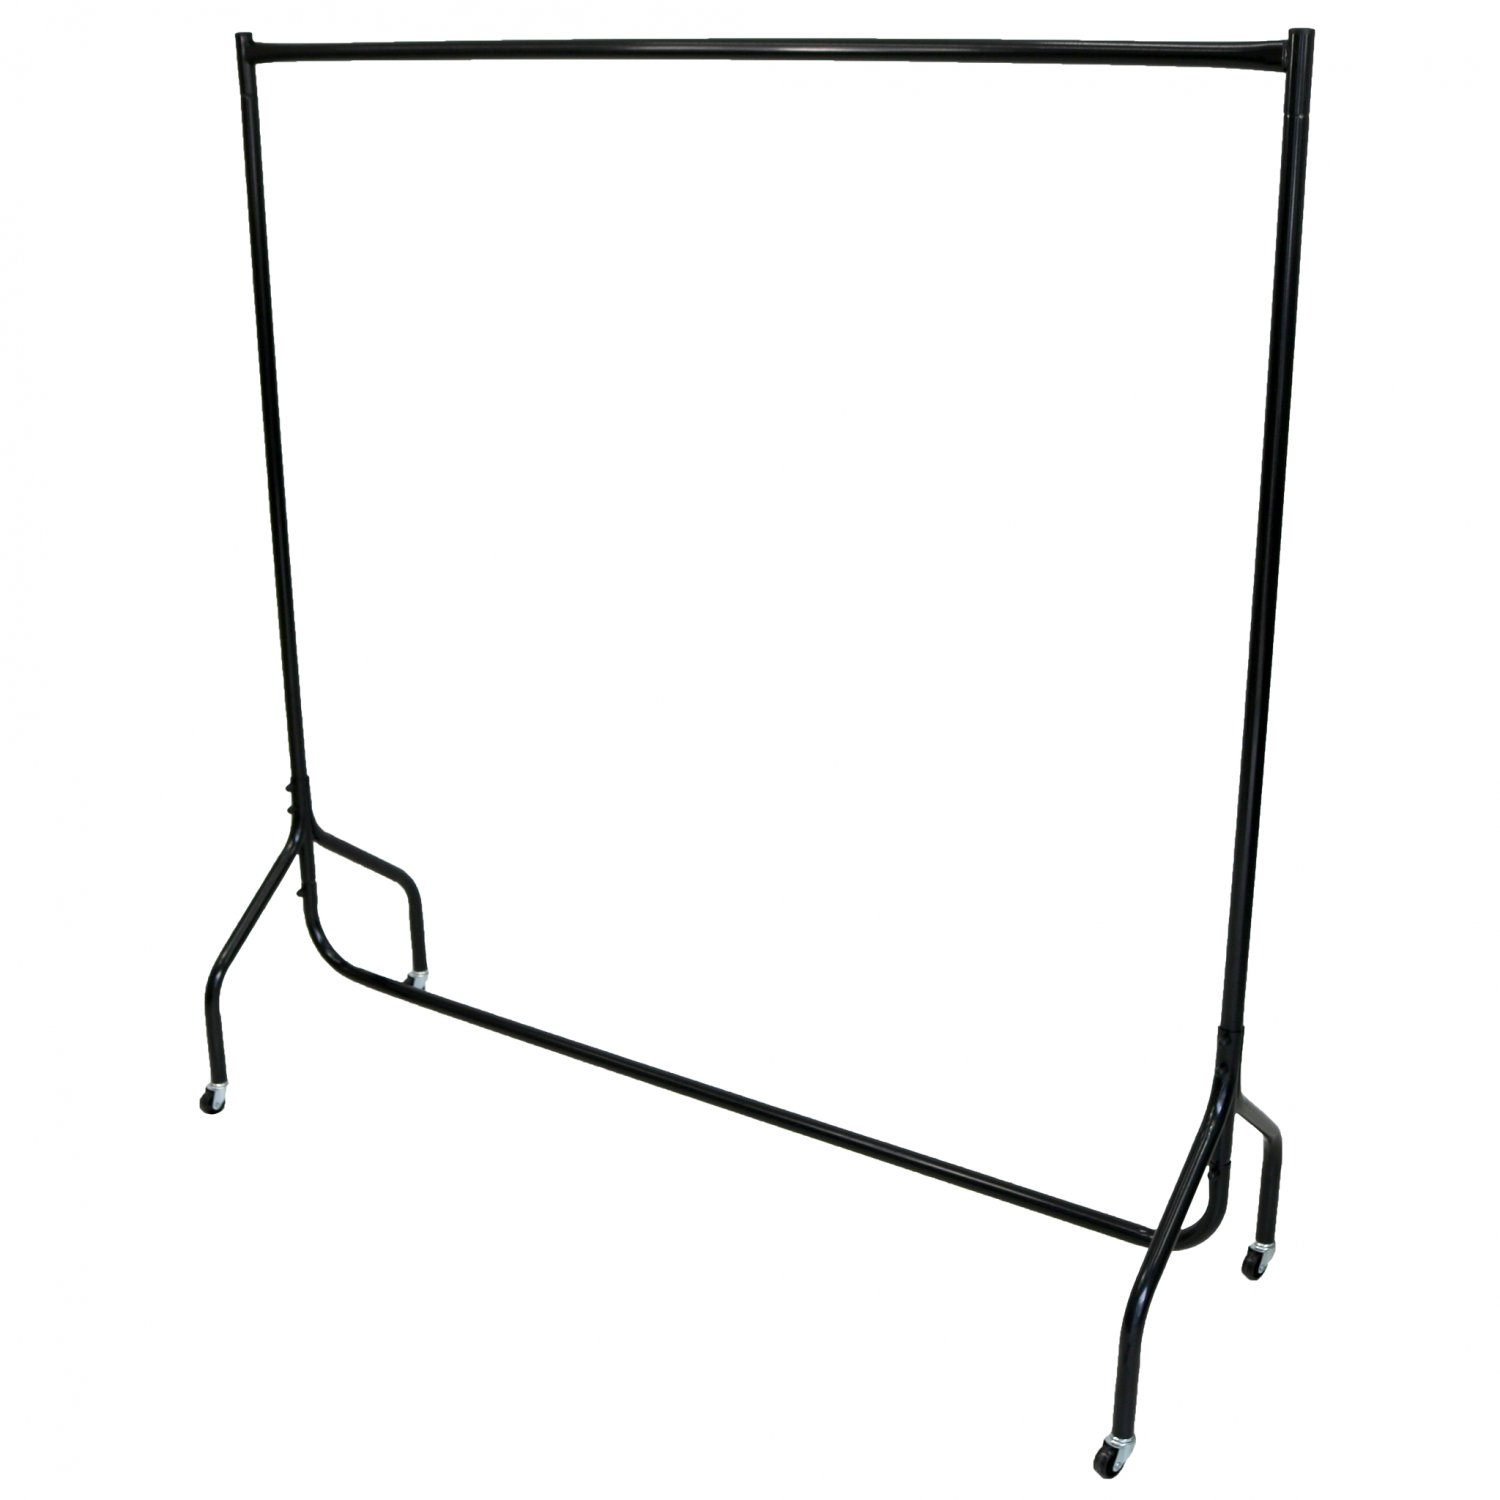 SUPER Heavy Duty WHITE Clothes Rail 3ft Long x 5ft High Storage Hanging Display